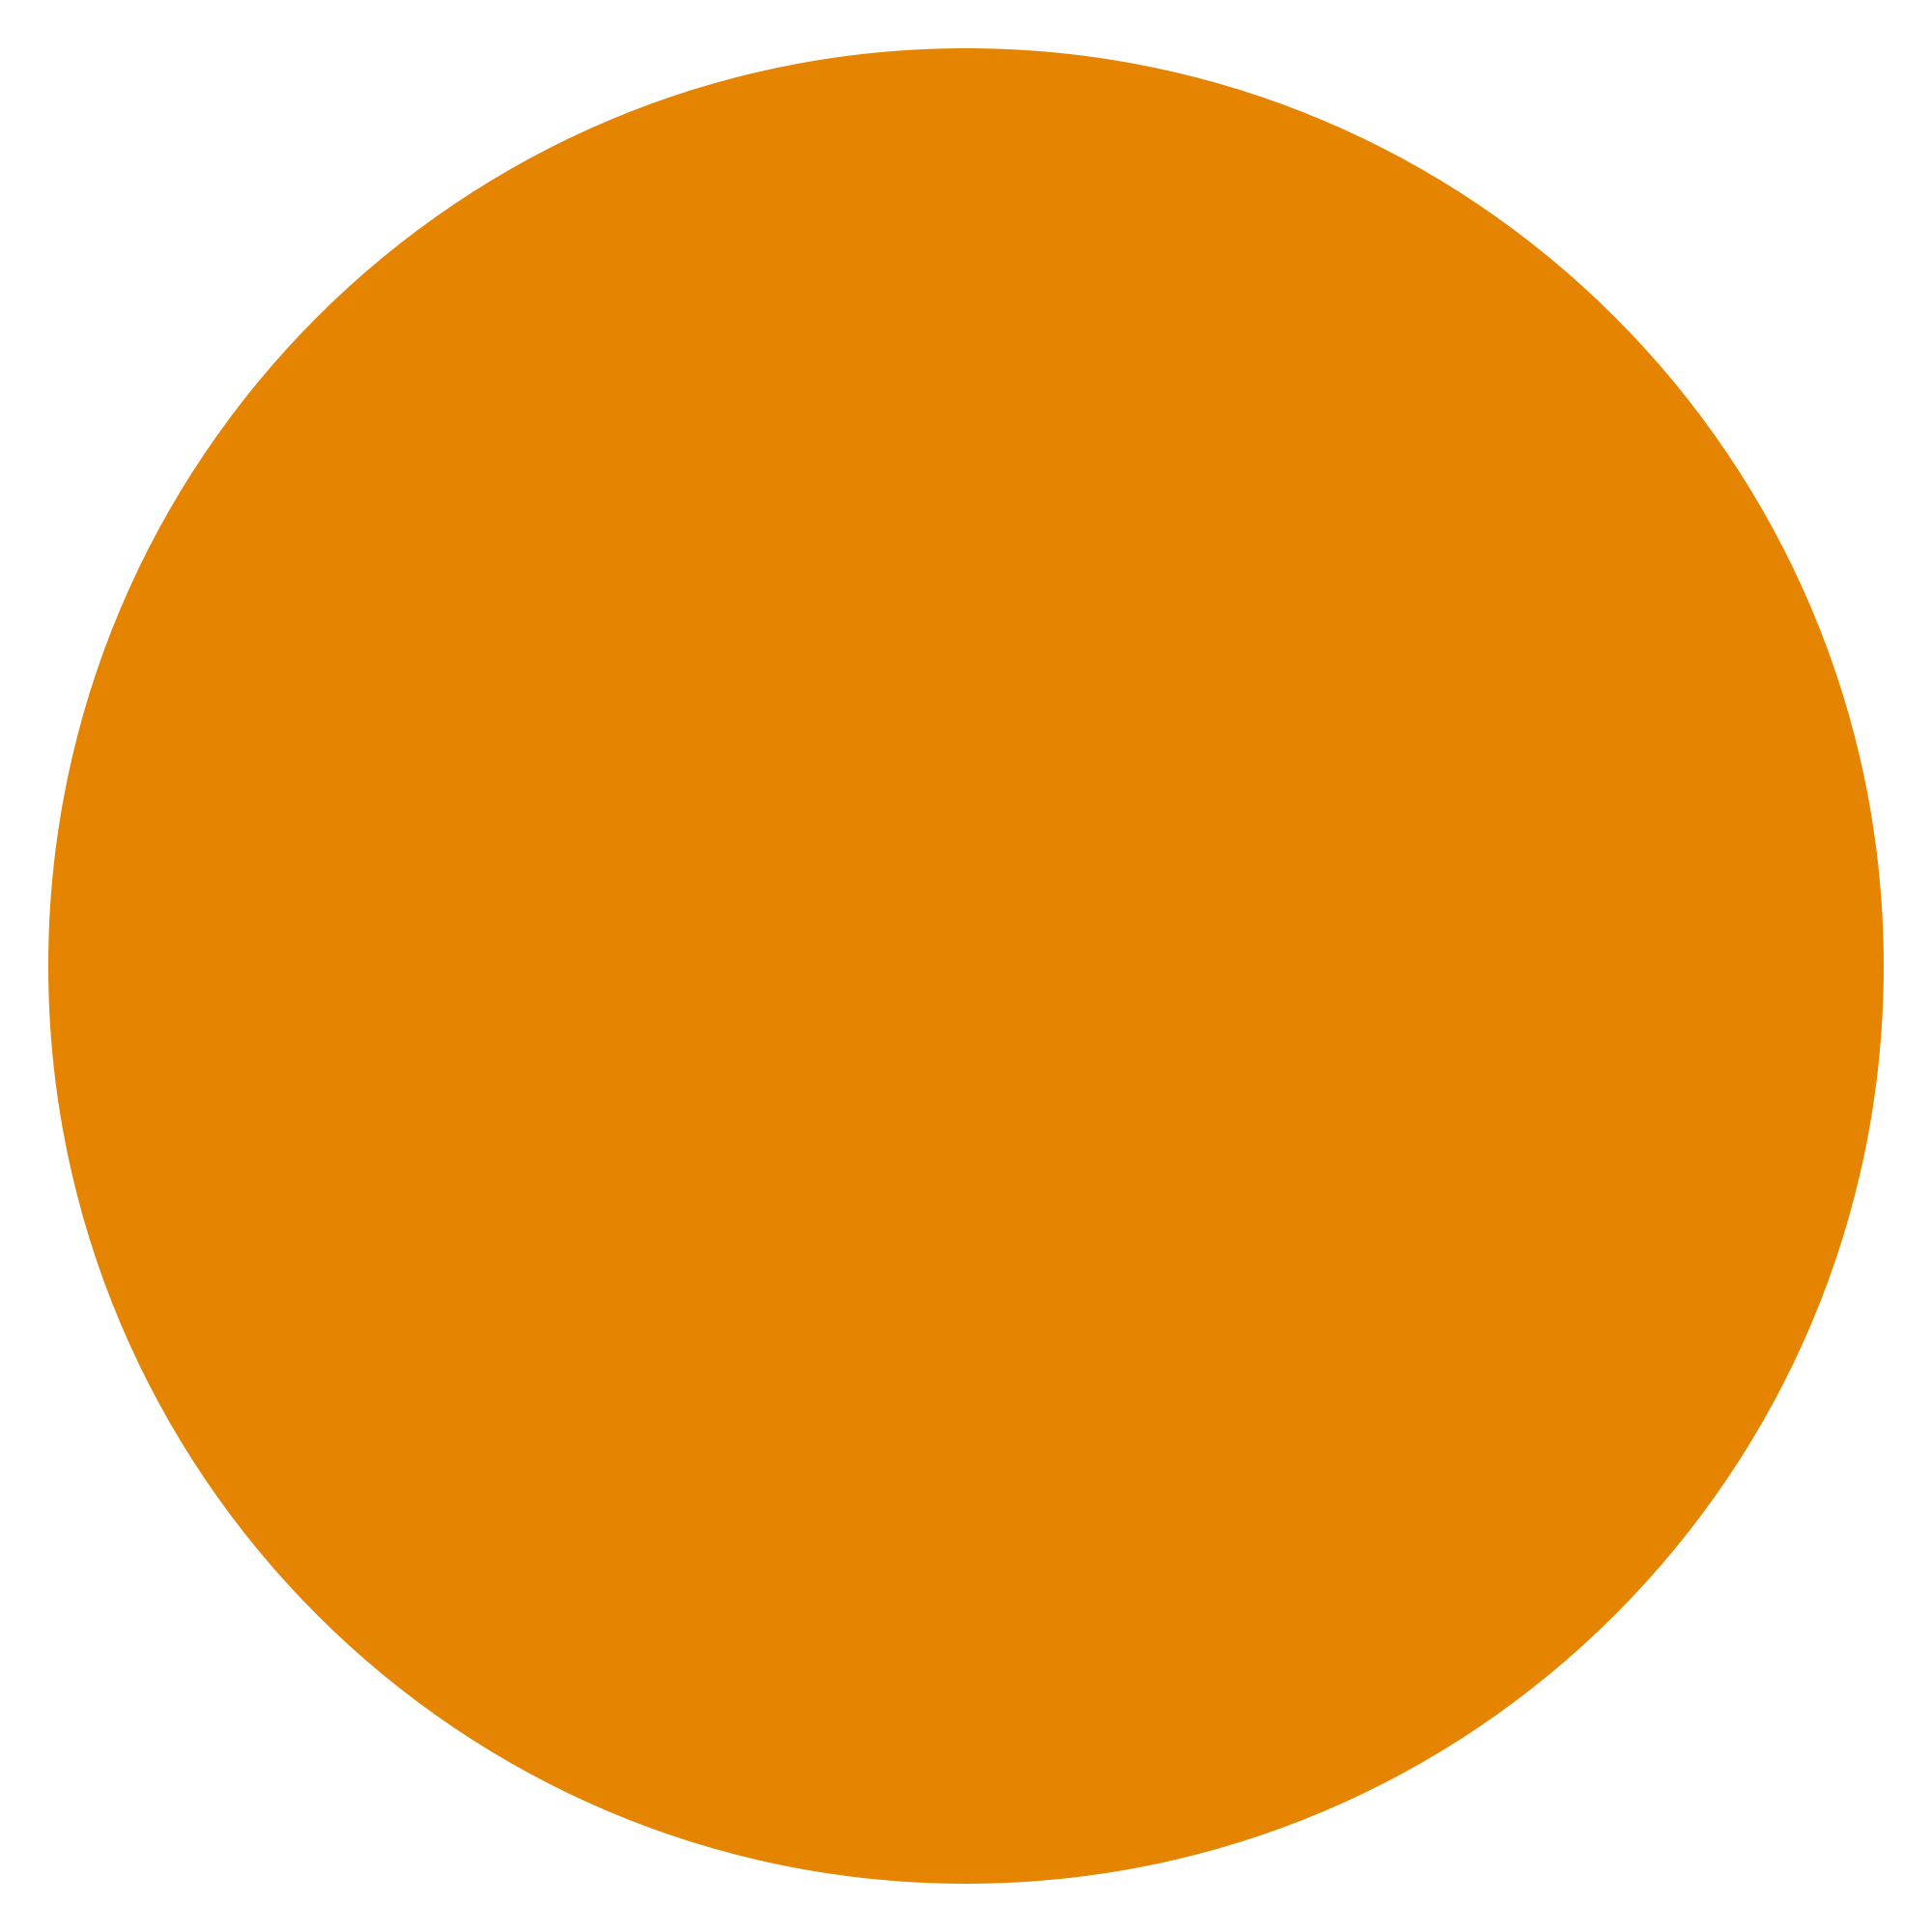 Circle clipart yellow circle Wikimedia Solid Fulvous Open svg